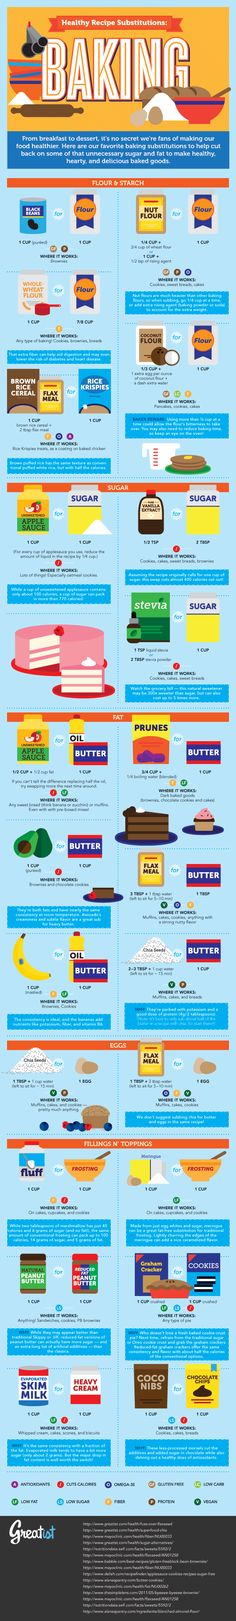 Healthy Recipe Substitutions: Baking by greatist